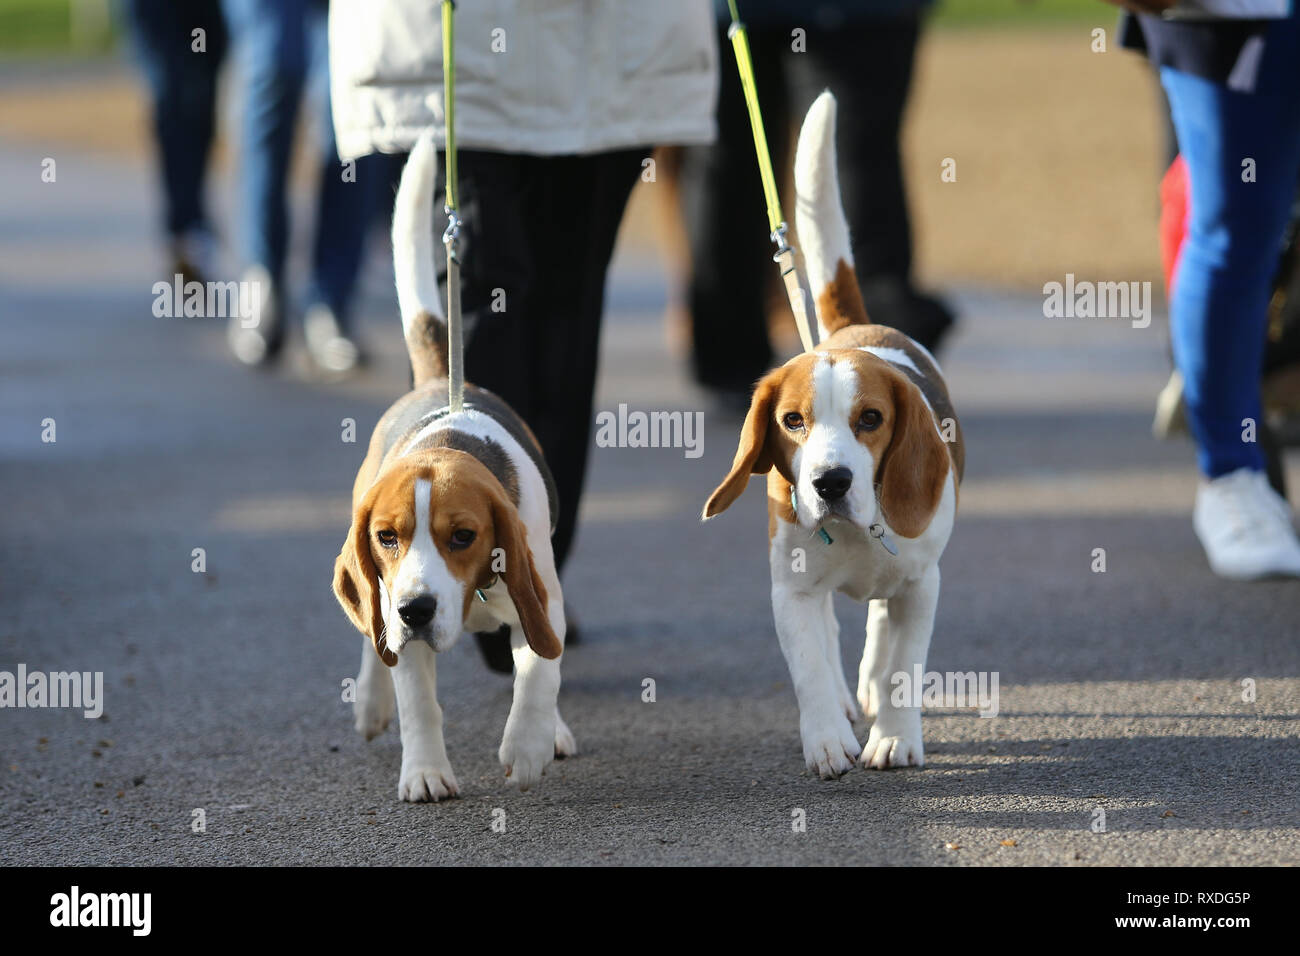 Birmingham, UK. 9th March, 2019. Dogs arrive with their owners on day three of Crufts, the world's largest dog show, at the NEC Birmingham. Peter Lopeman/Alamy Live News - Stock Image